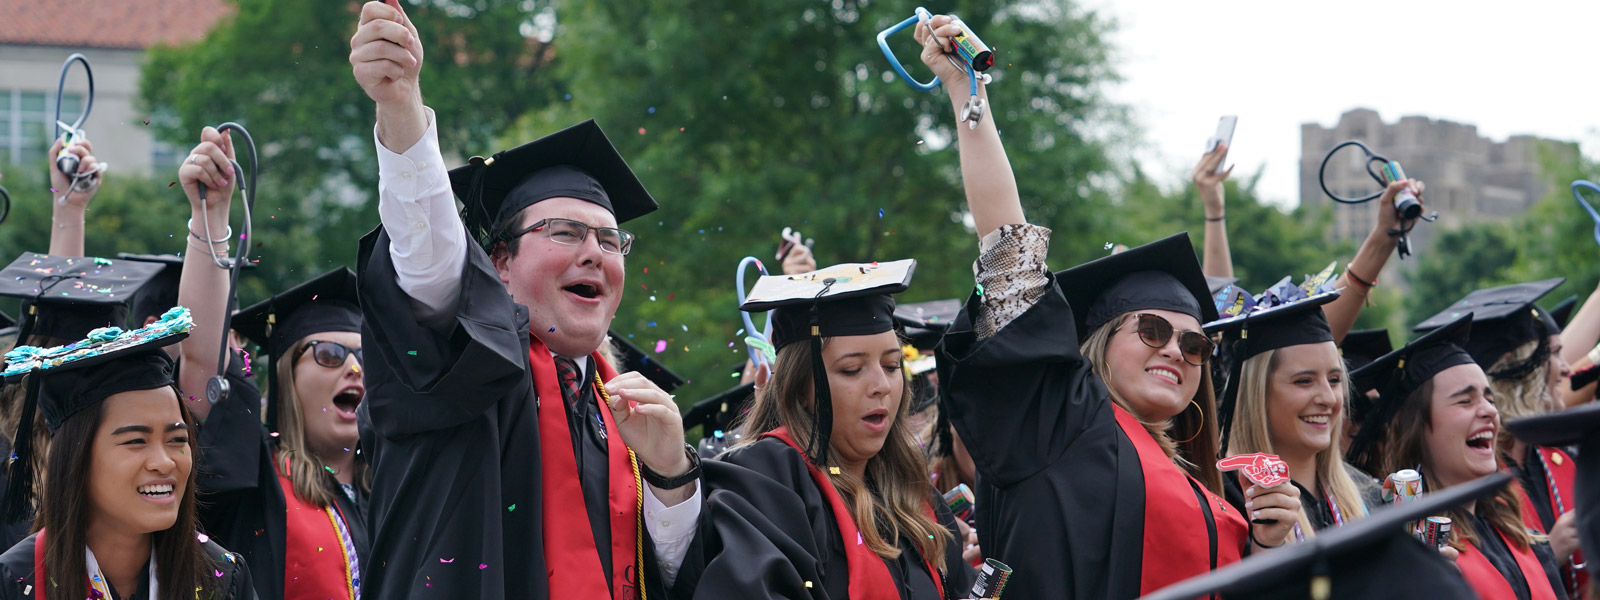 Graduates celebrating at Commencement ceremony